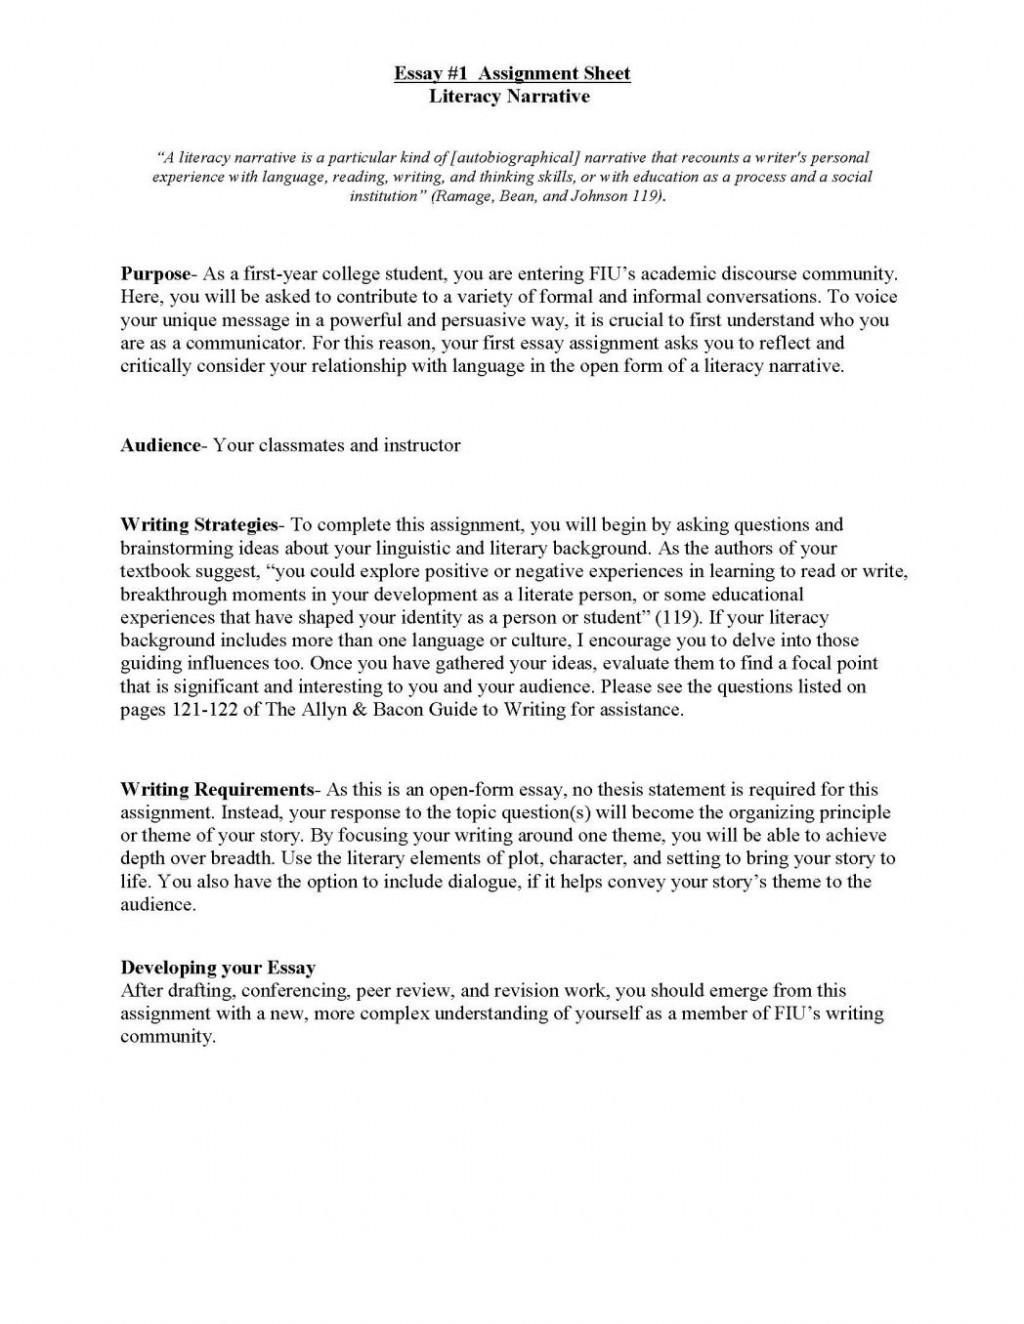 015 Short Narrative Essay Samples For High Schools Literacy Unit Assignment Spring 2012 P Personal Pdf 1048x1356 Fantastic About Life Topics Large